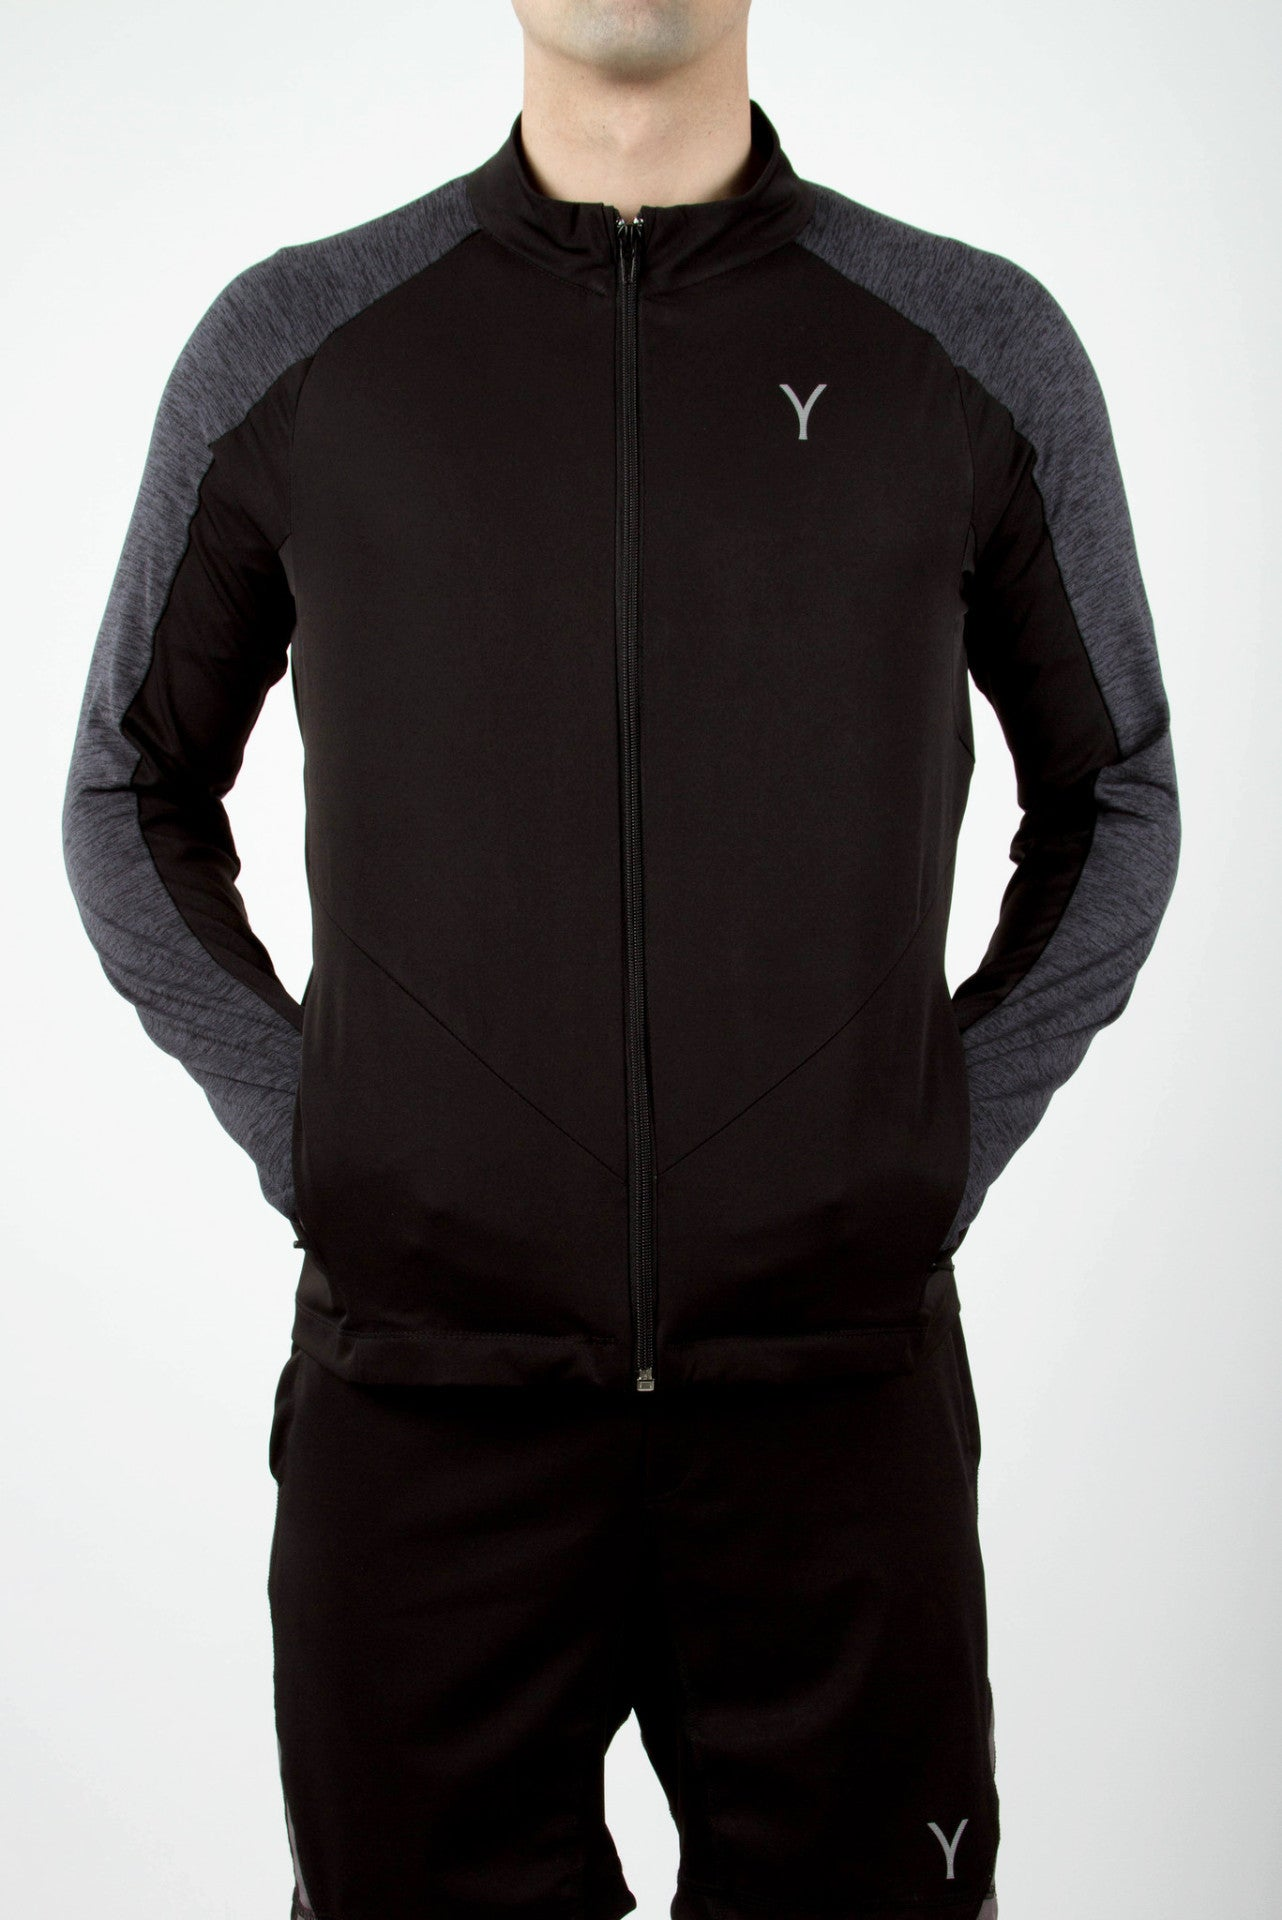 Yashel groundbreaker jacket athletic wear made in los angeles